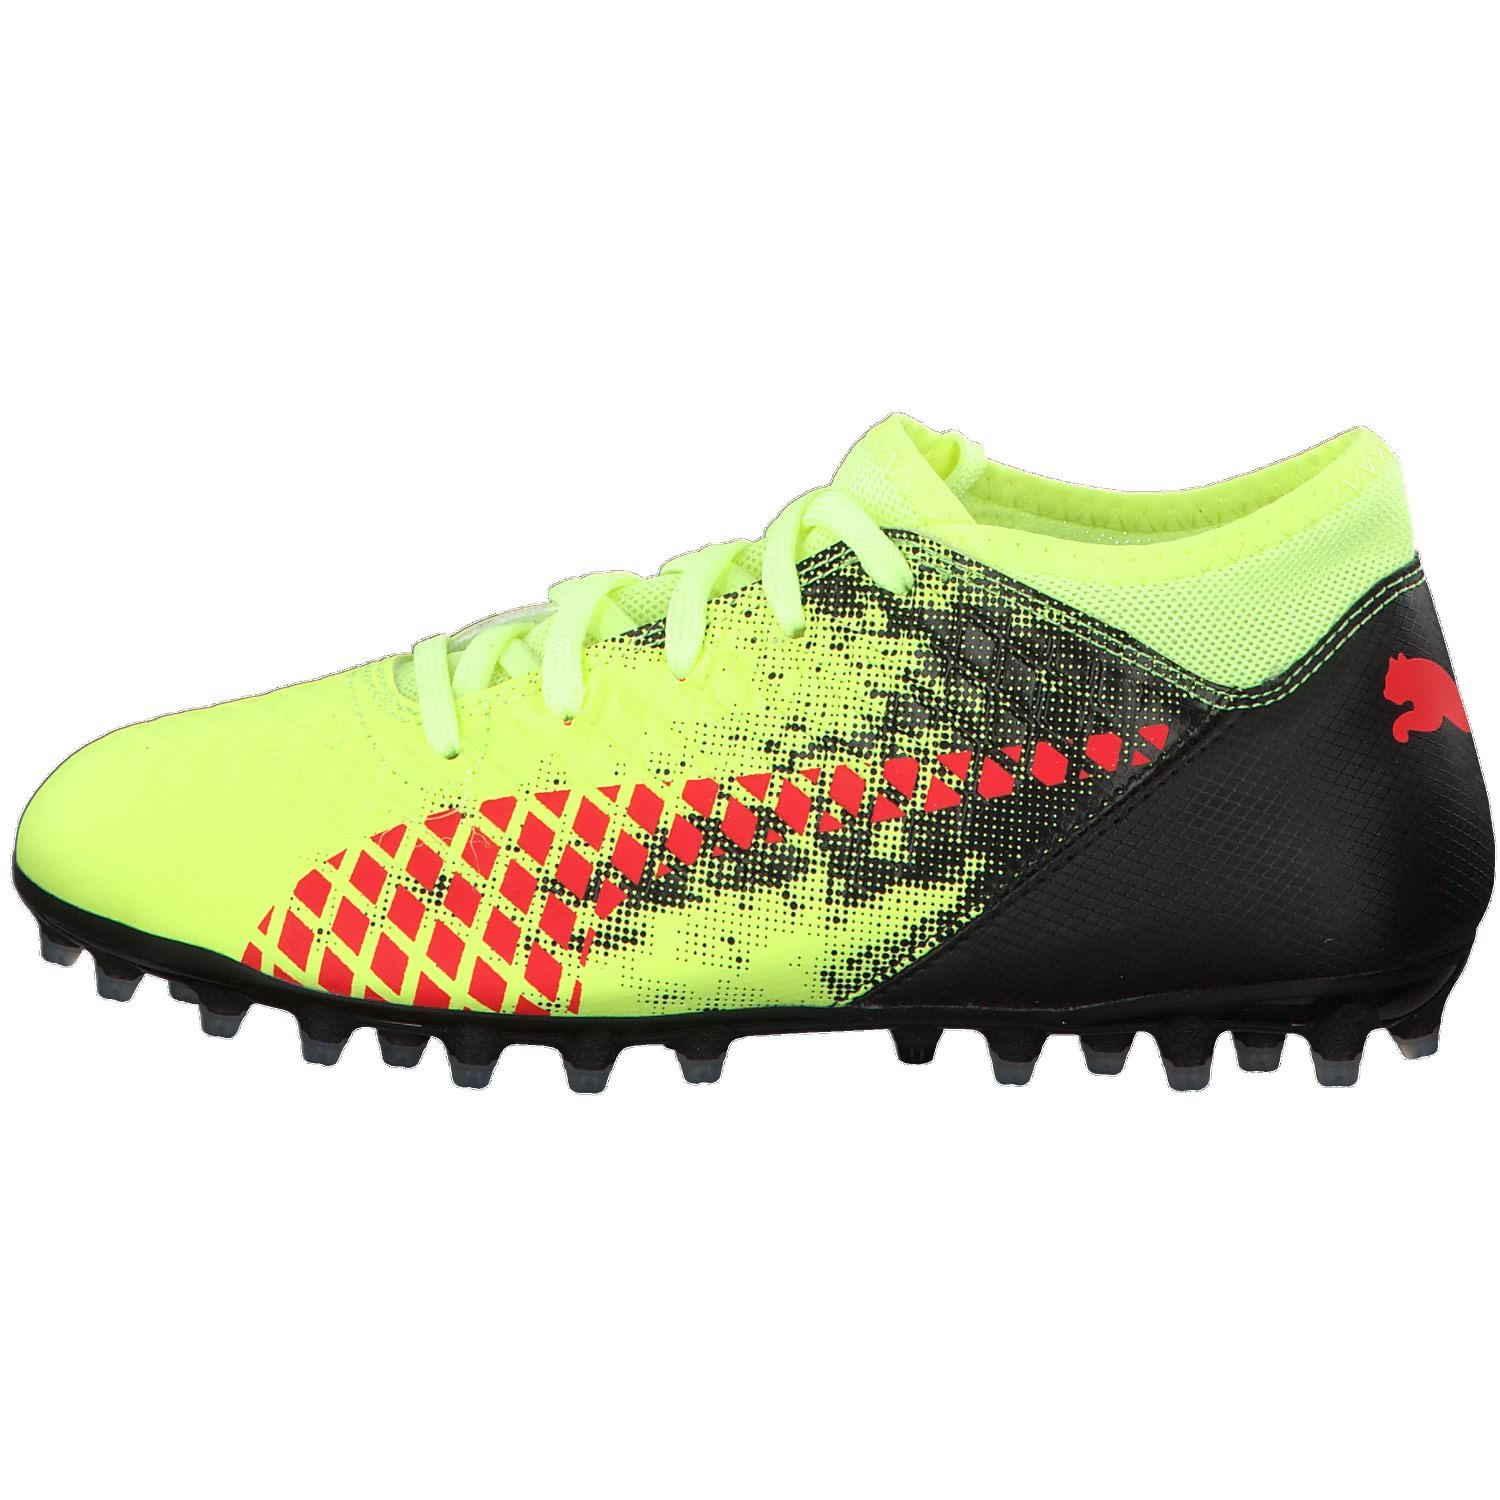 48843ddd2085 Puma Future 18.4 MG Junior Football Boots